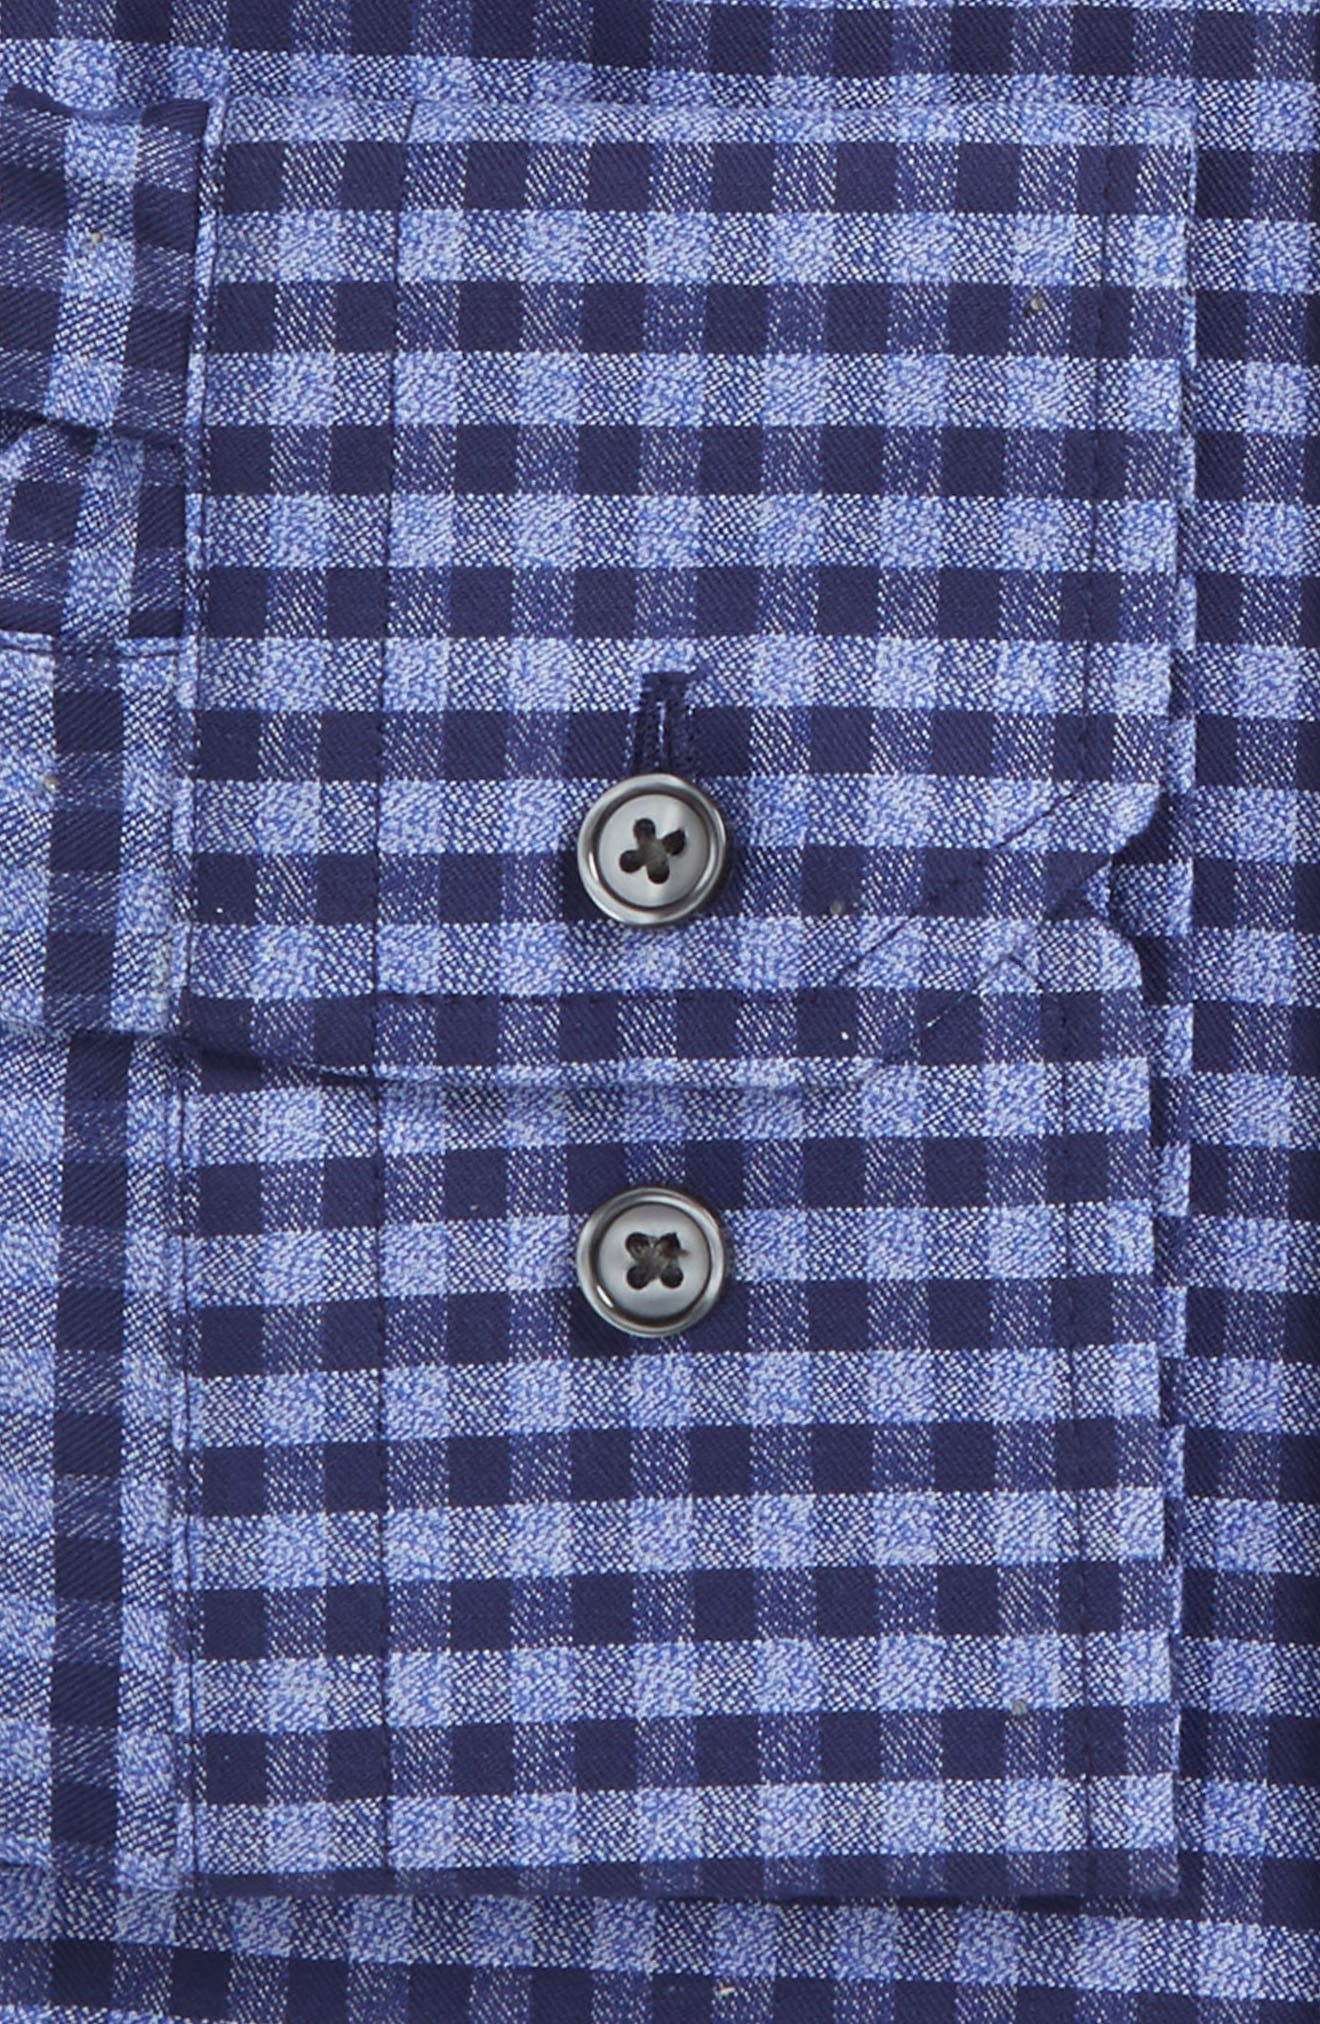 Trim Fit Non-Iron Check Dress Shirt,                             Alternate thumbnail 4, color,                             Blue Dazzle